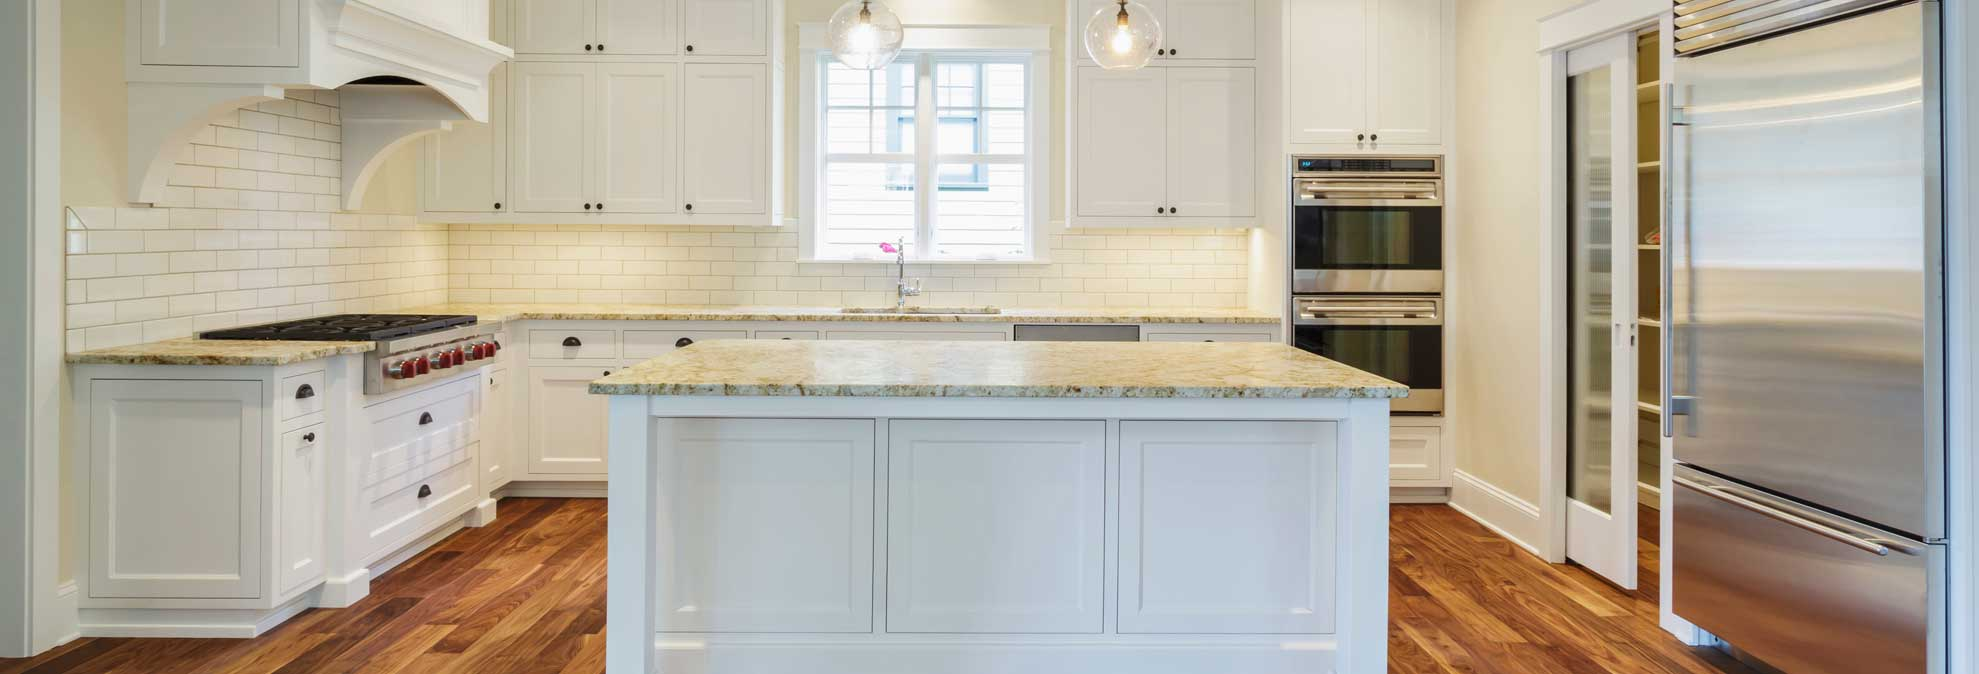 Kitchen Remodel On A Budget kitchen remodel mistakes that will bust your budget - consumer reports